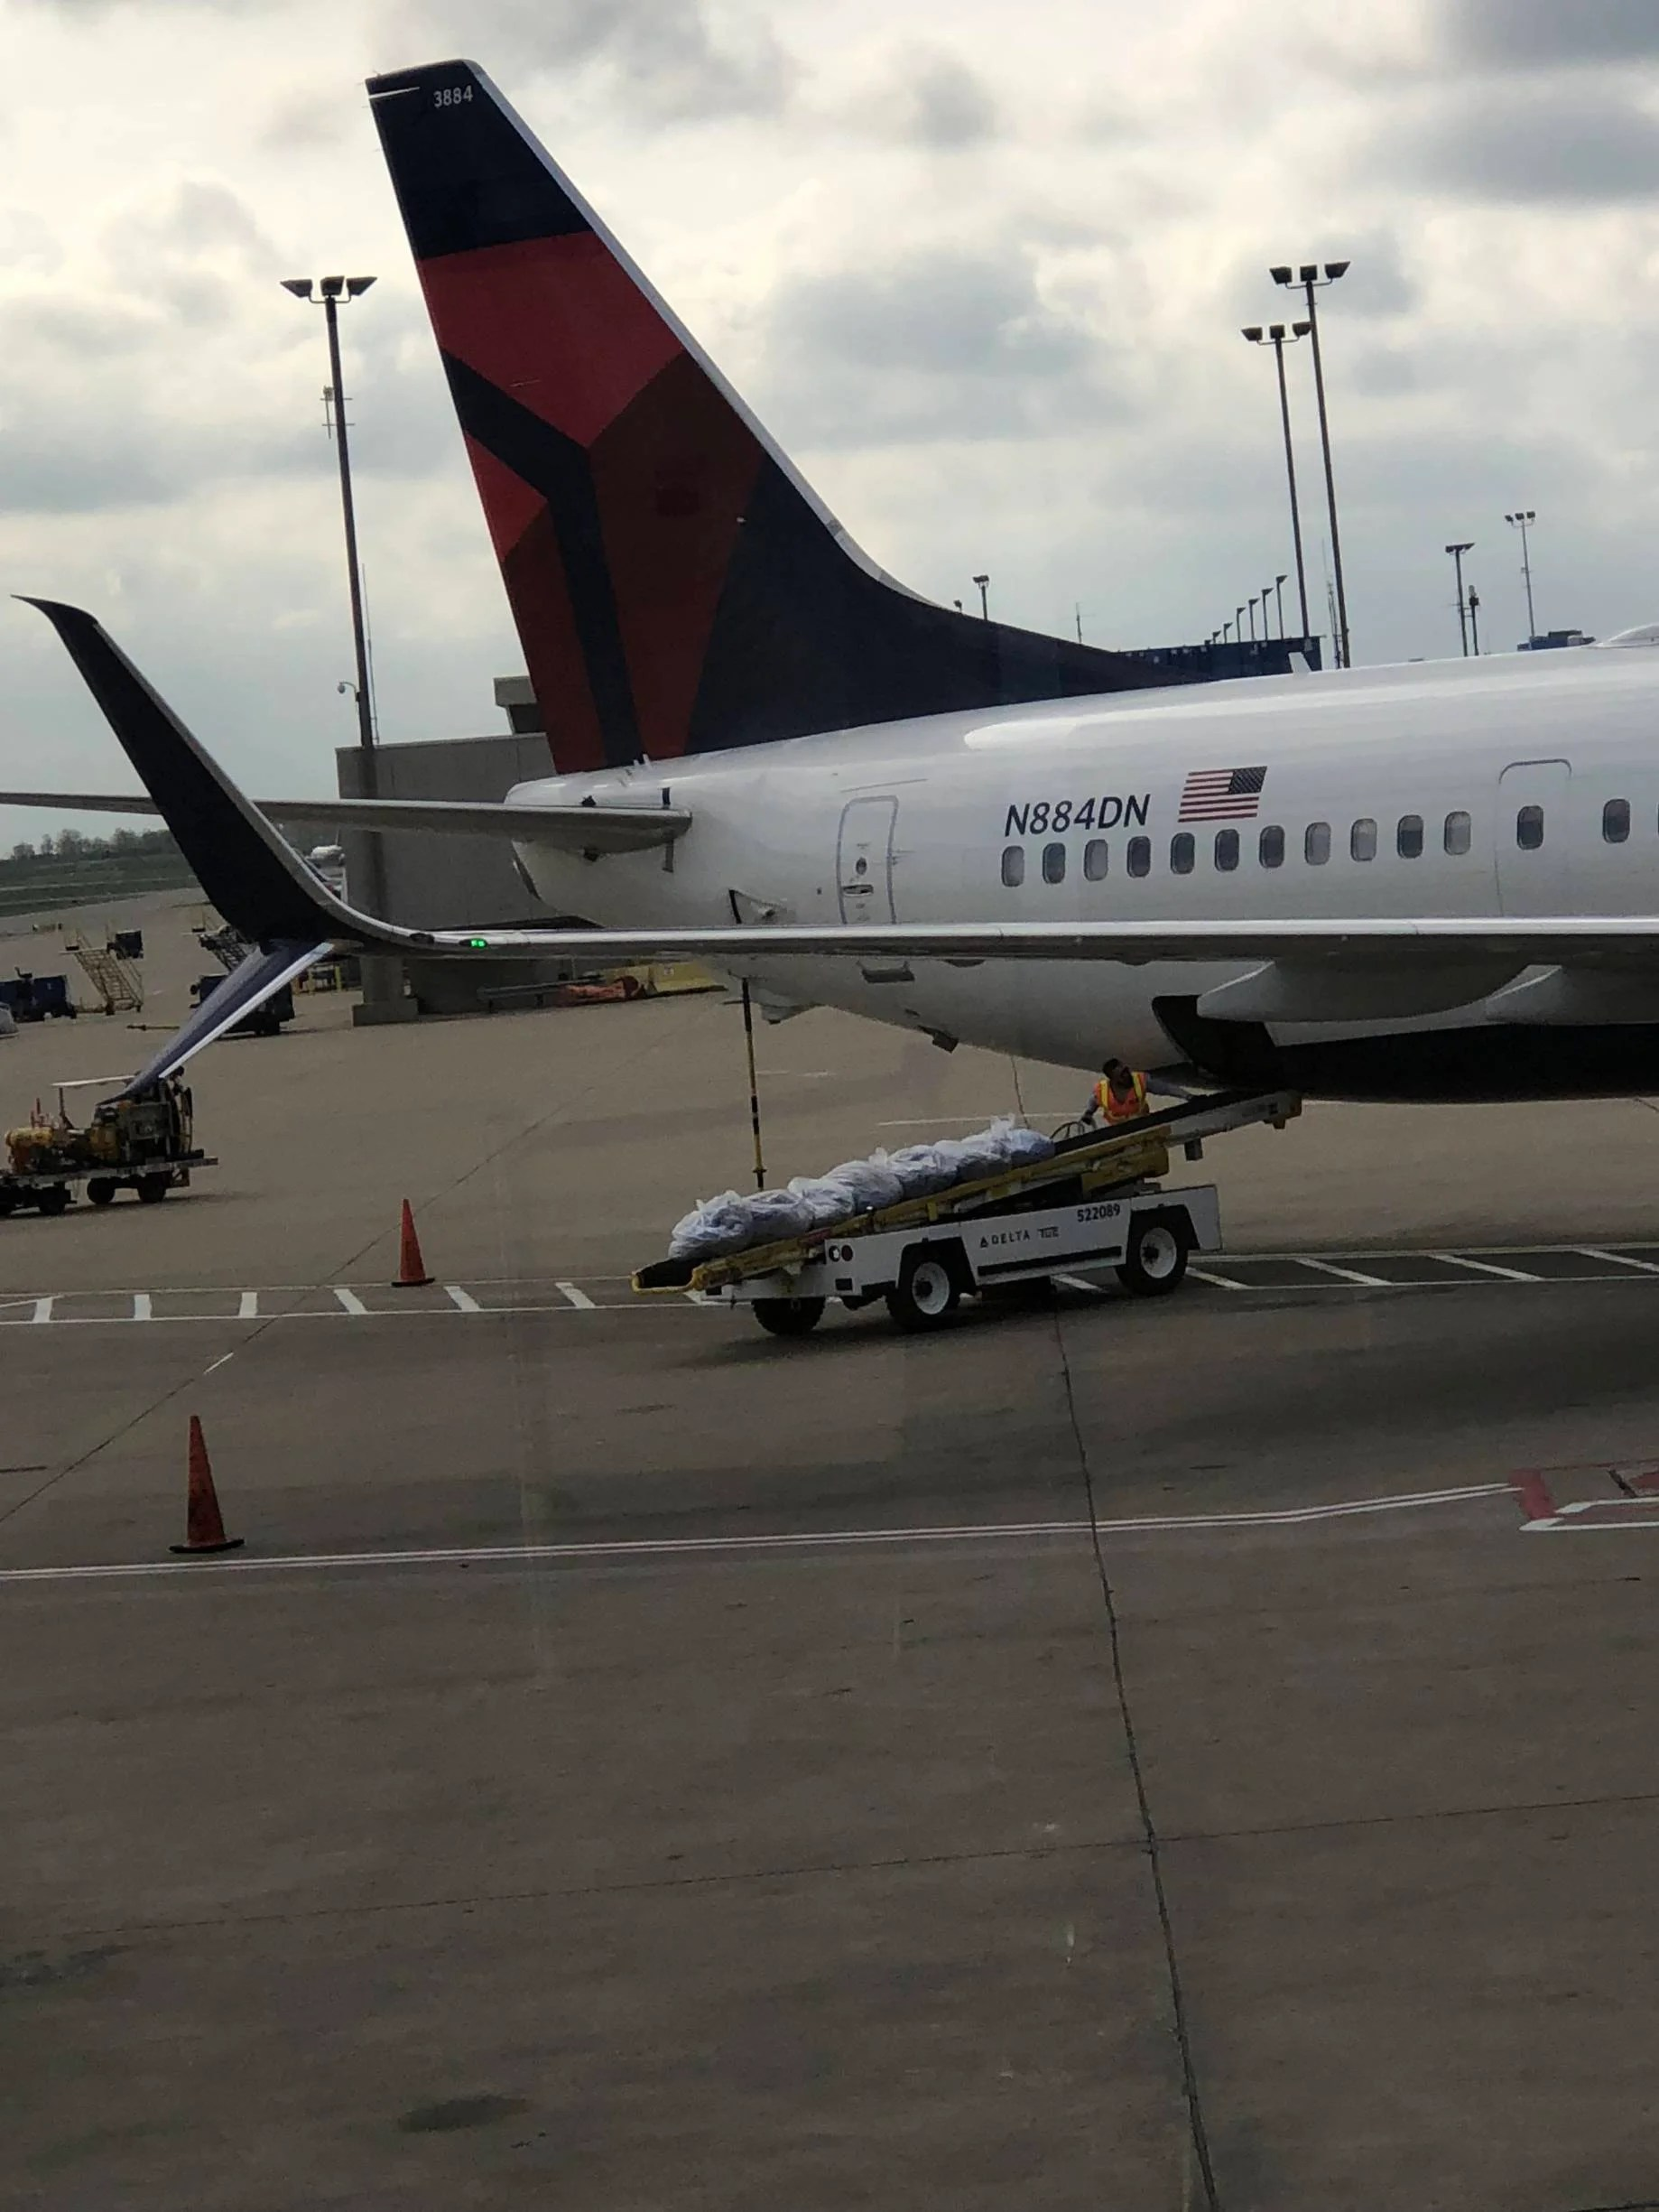 A tail stand in action on a Delta 737-900. Image from Reddit used with permission.